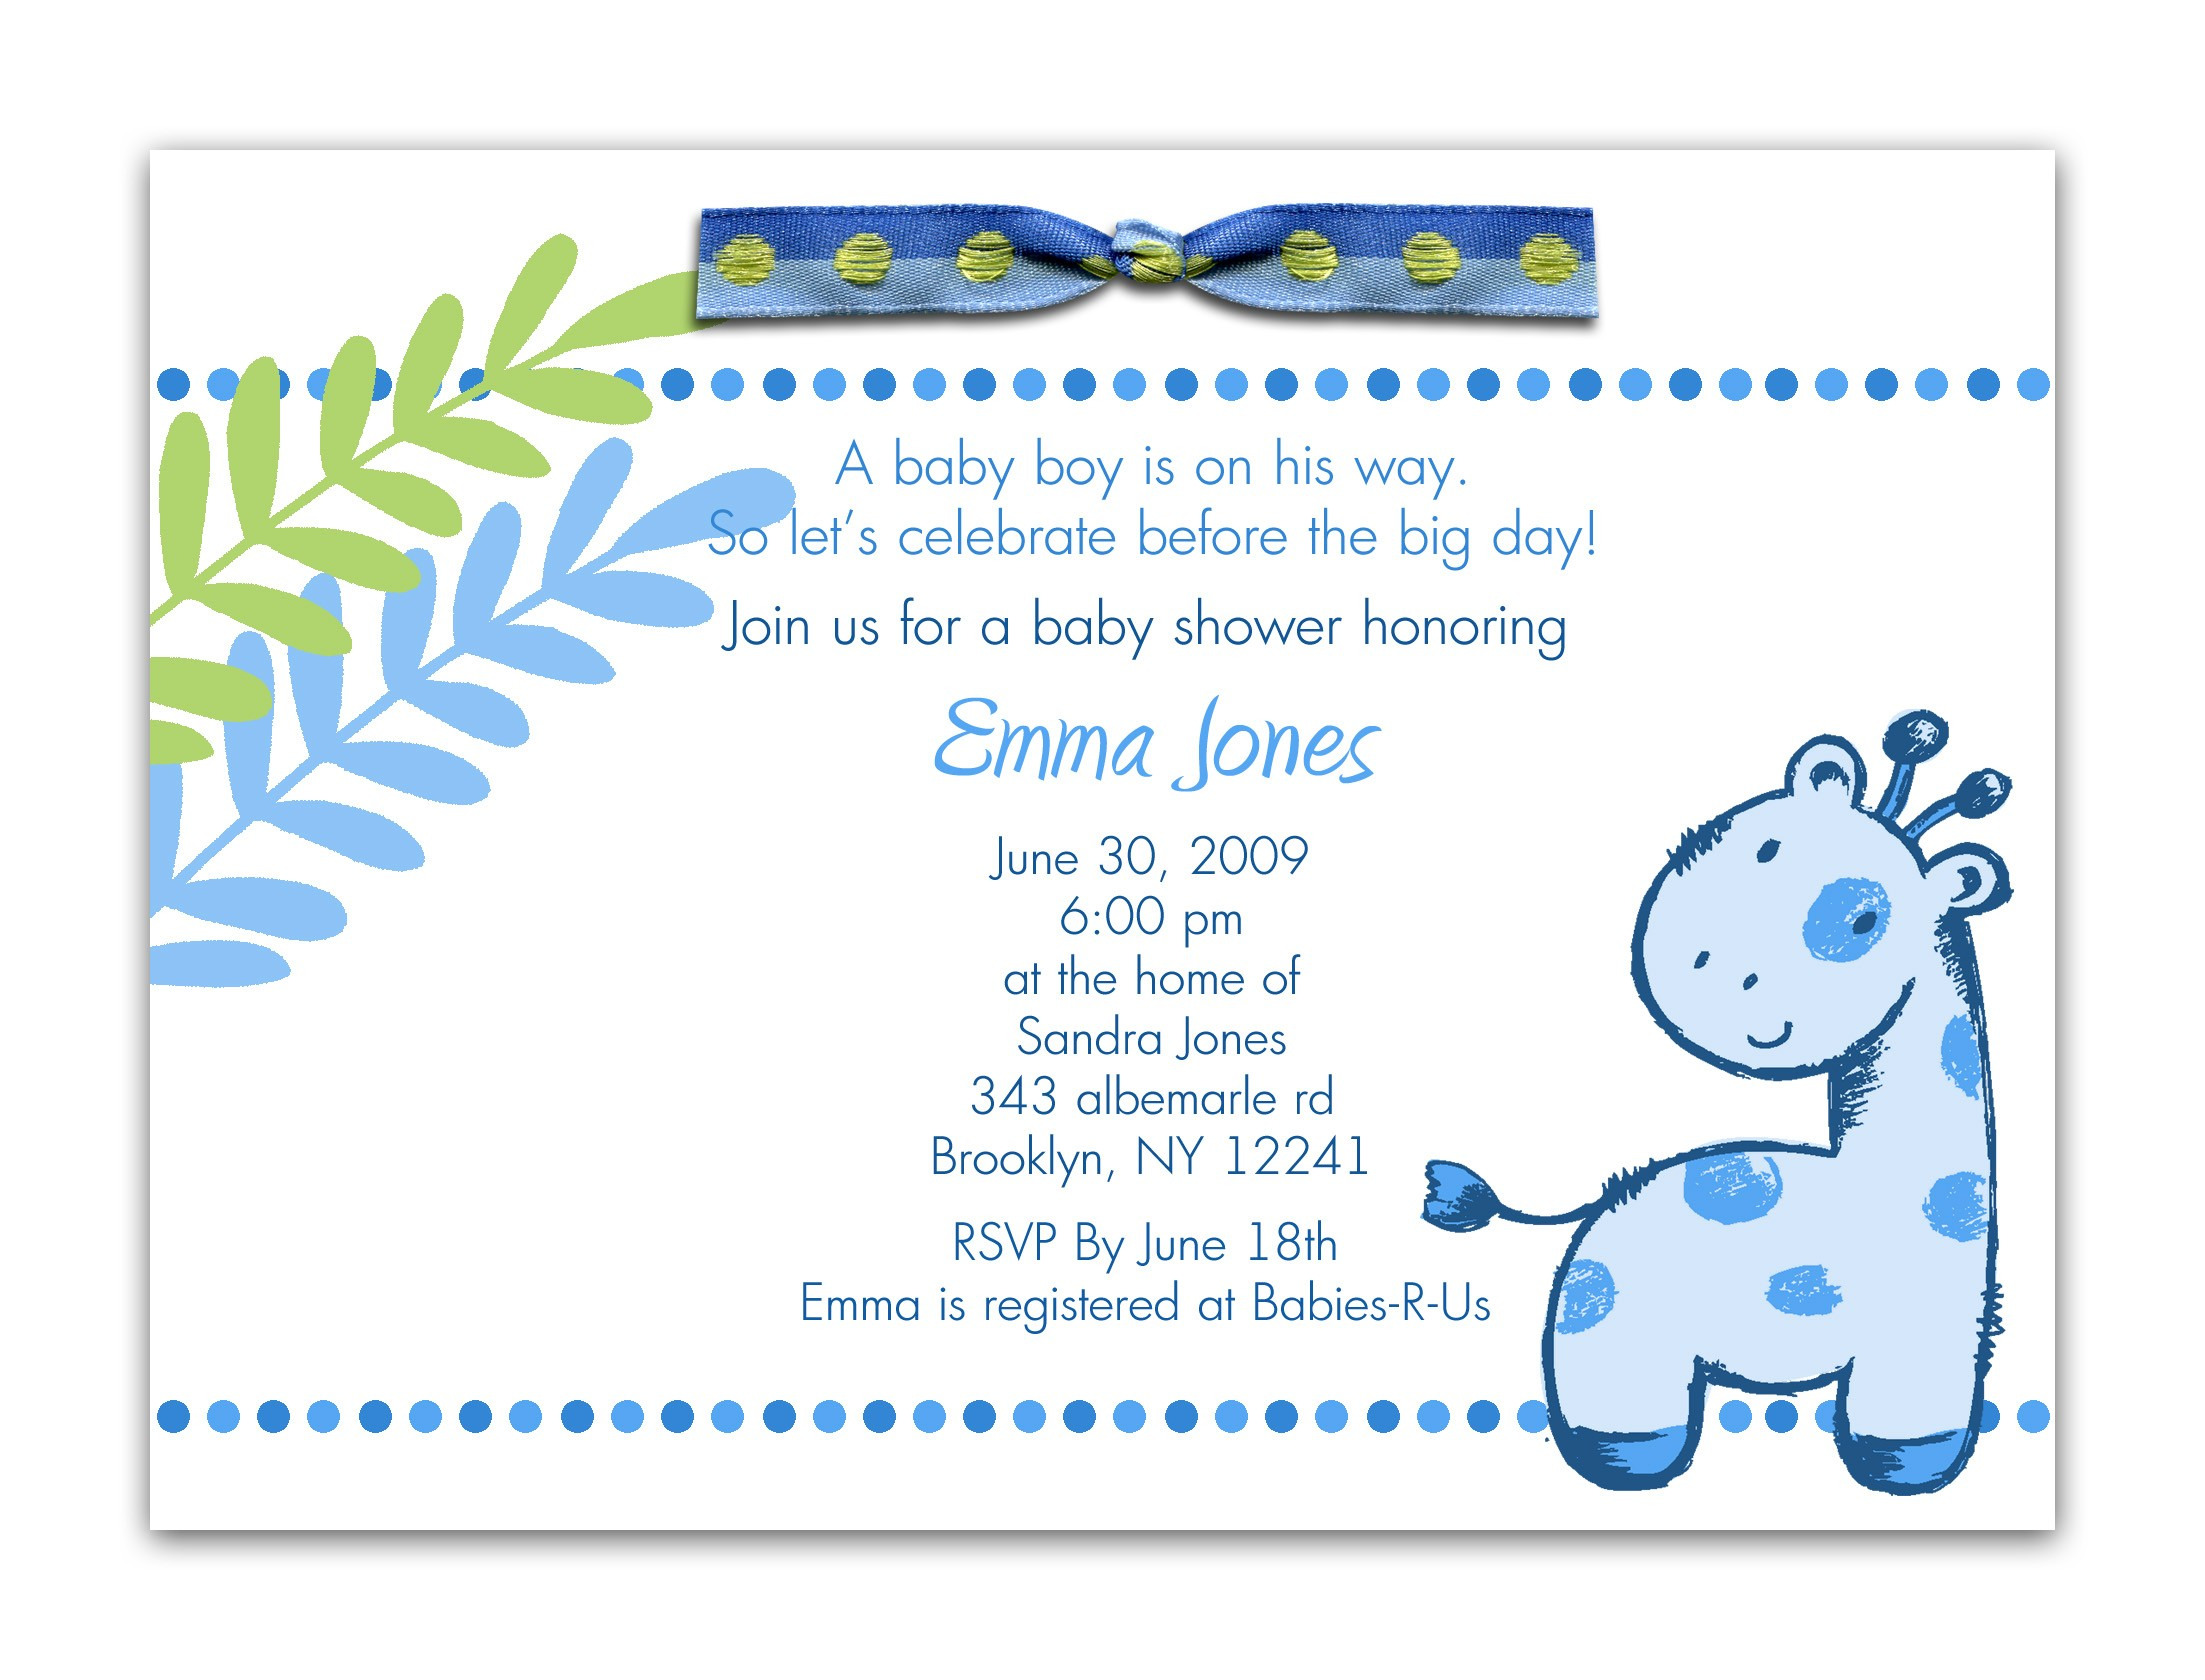 Full Size of Baby Shower:baby Shower Halls With Baby Shower At The Park Plus Recuerdos De Baby Shower Together With Fun Baby Shower Games As Well As Baby Shower Hostess Gifts And Baby Shower Verses Baby Shower Invitation Wording Luxury Baby Boy Shower Invitation Wording Baby Shower Ideas